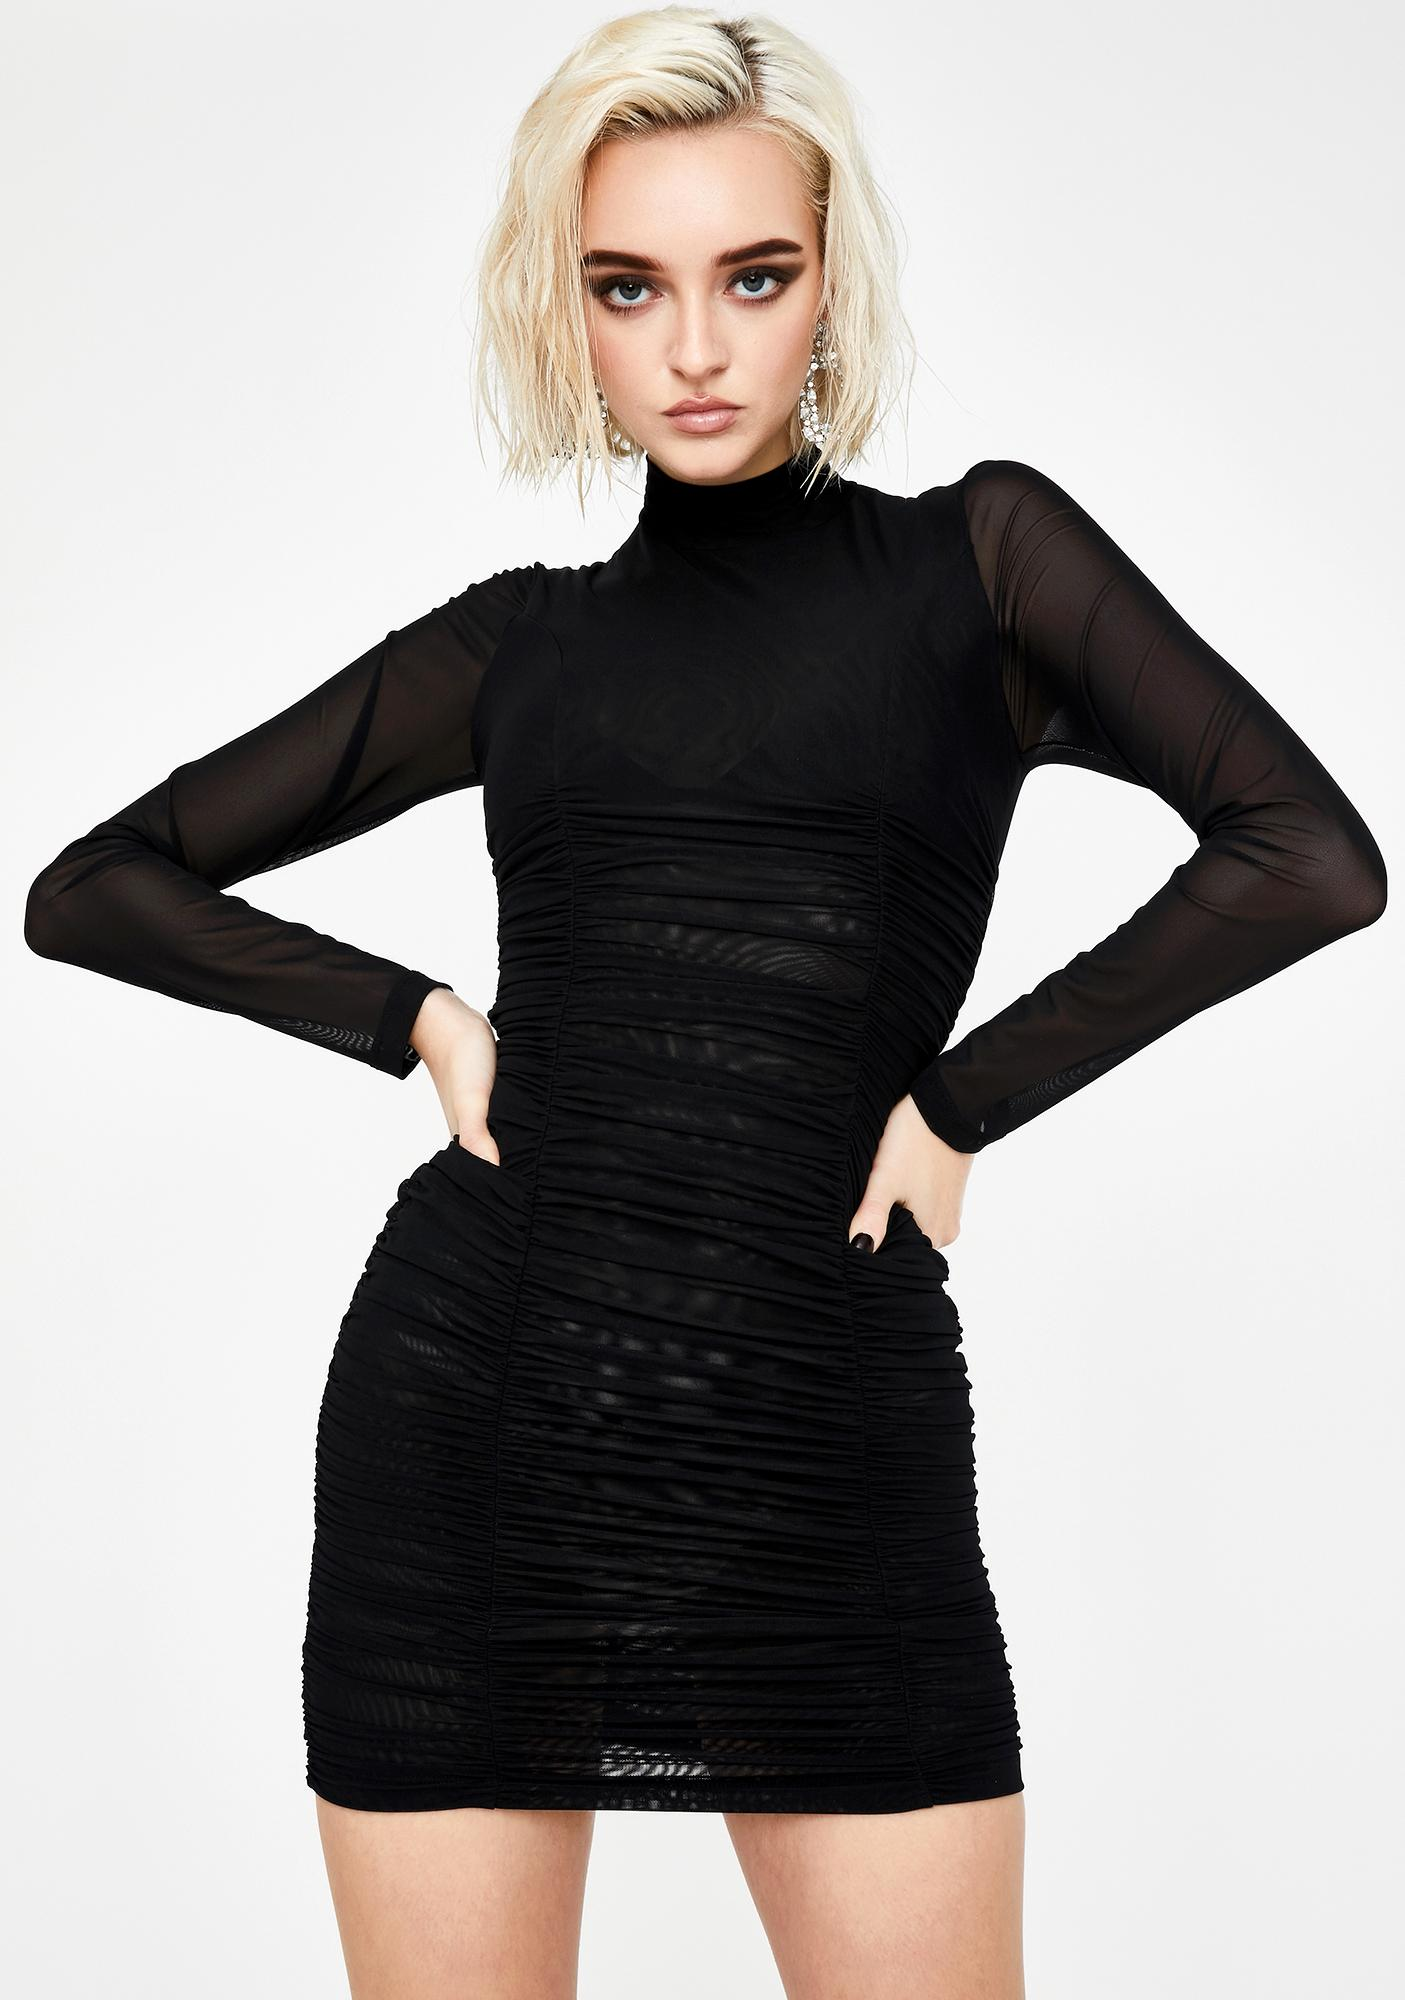 Kiki Riki Up All Nite Bodycon Dress